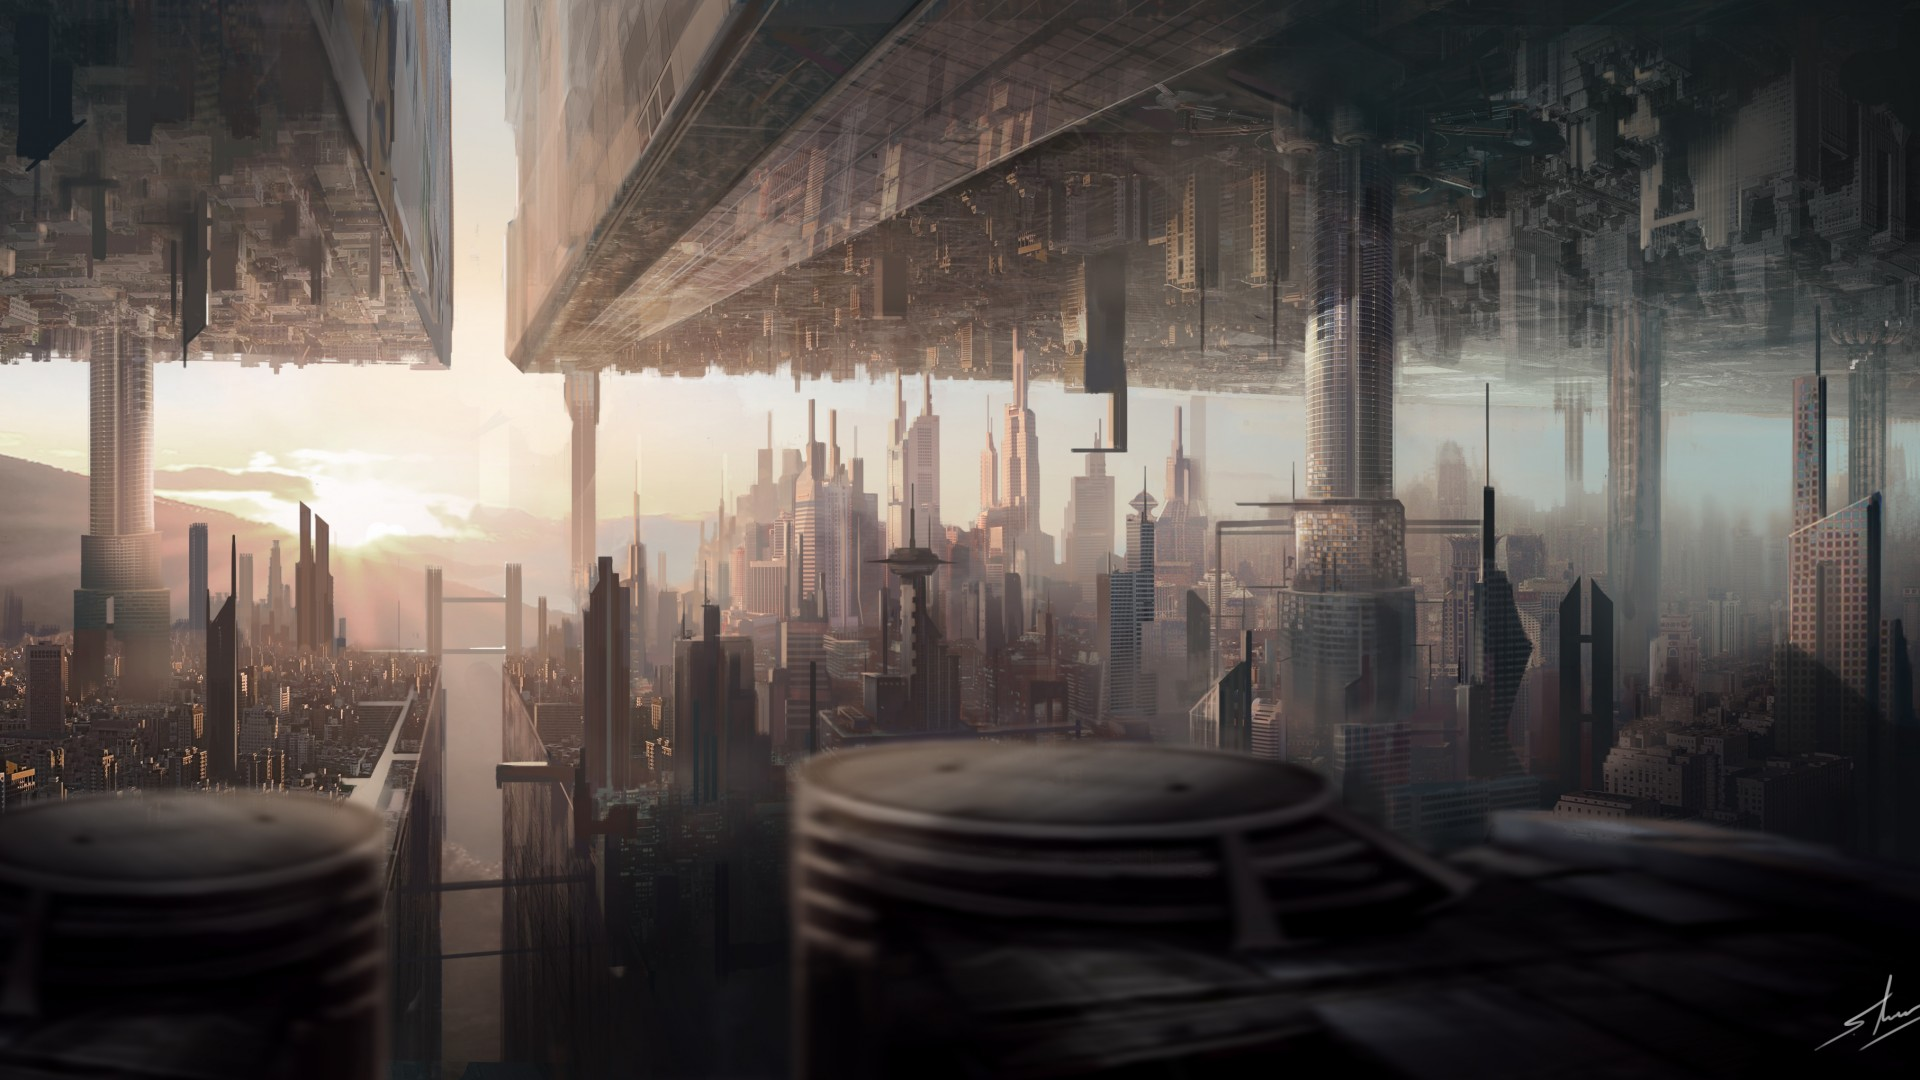 matte painting, art, city, urban, futuristic, sci-fi, sunset (horizontal)